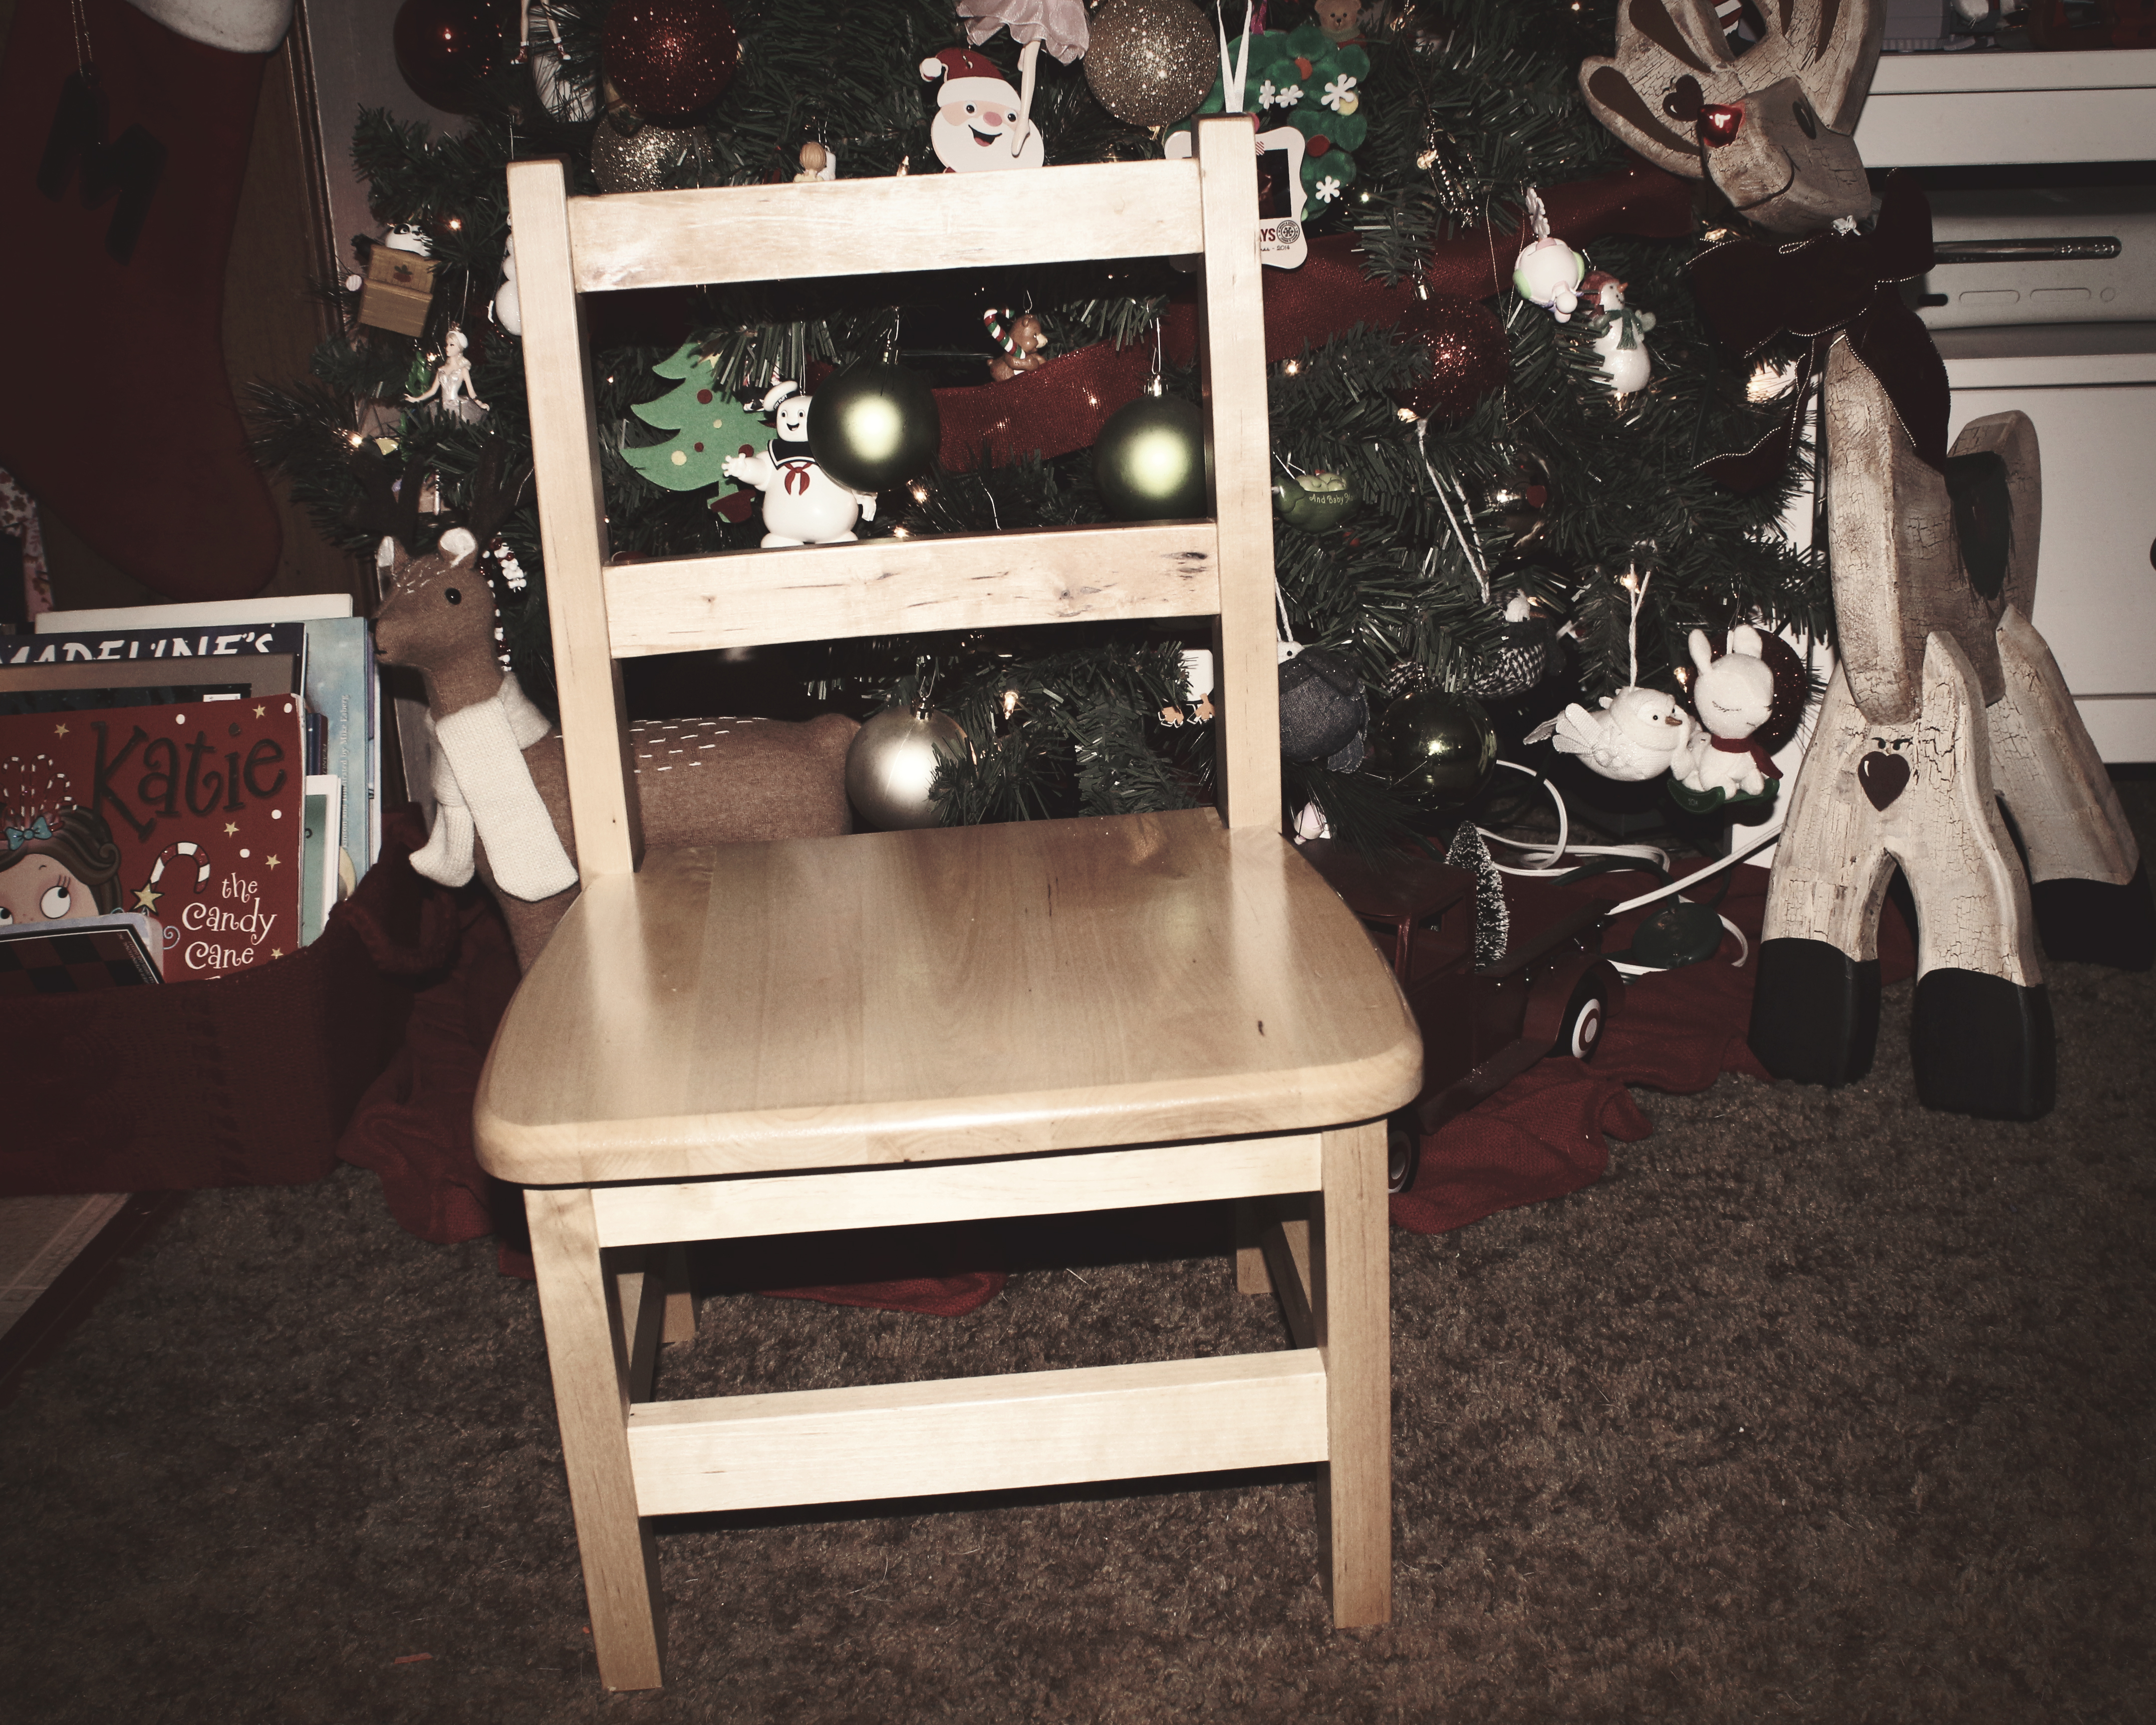 An empty chair in front of Christmas Tree